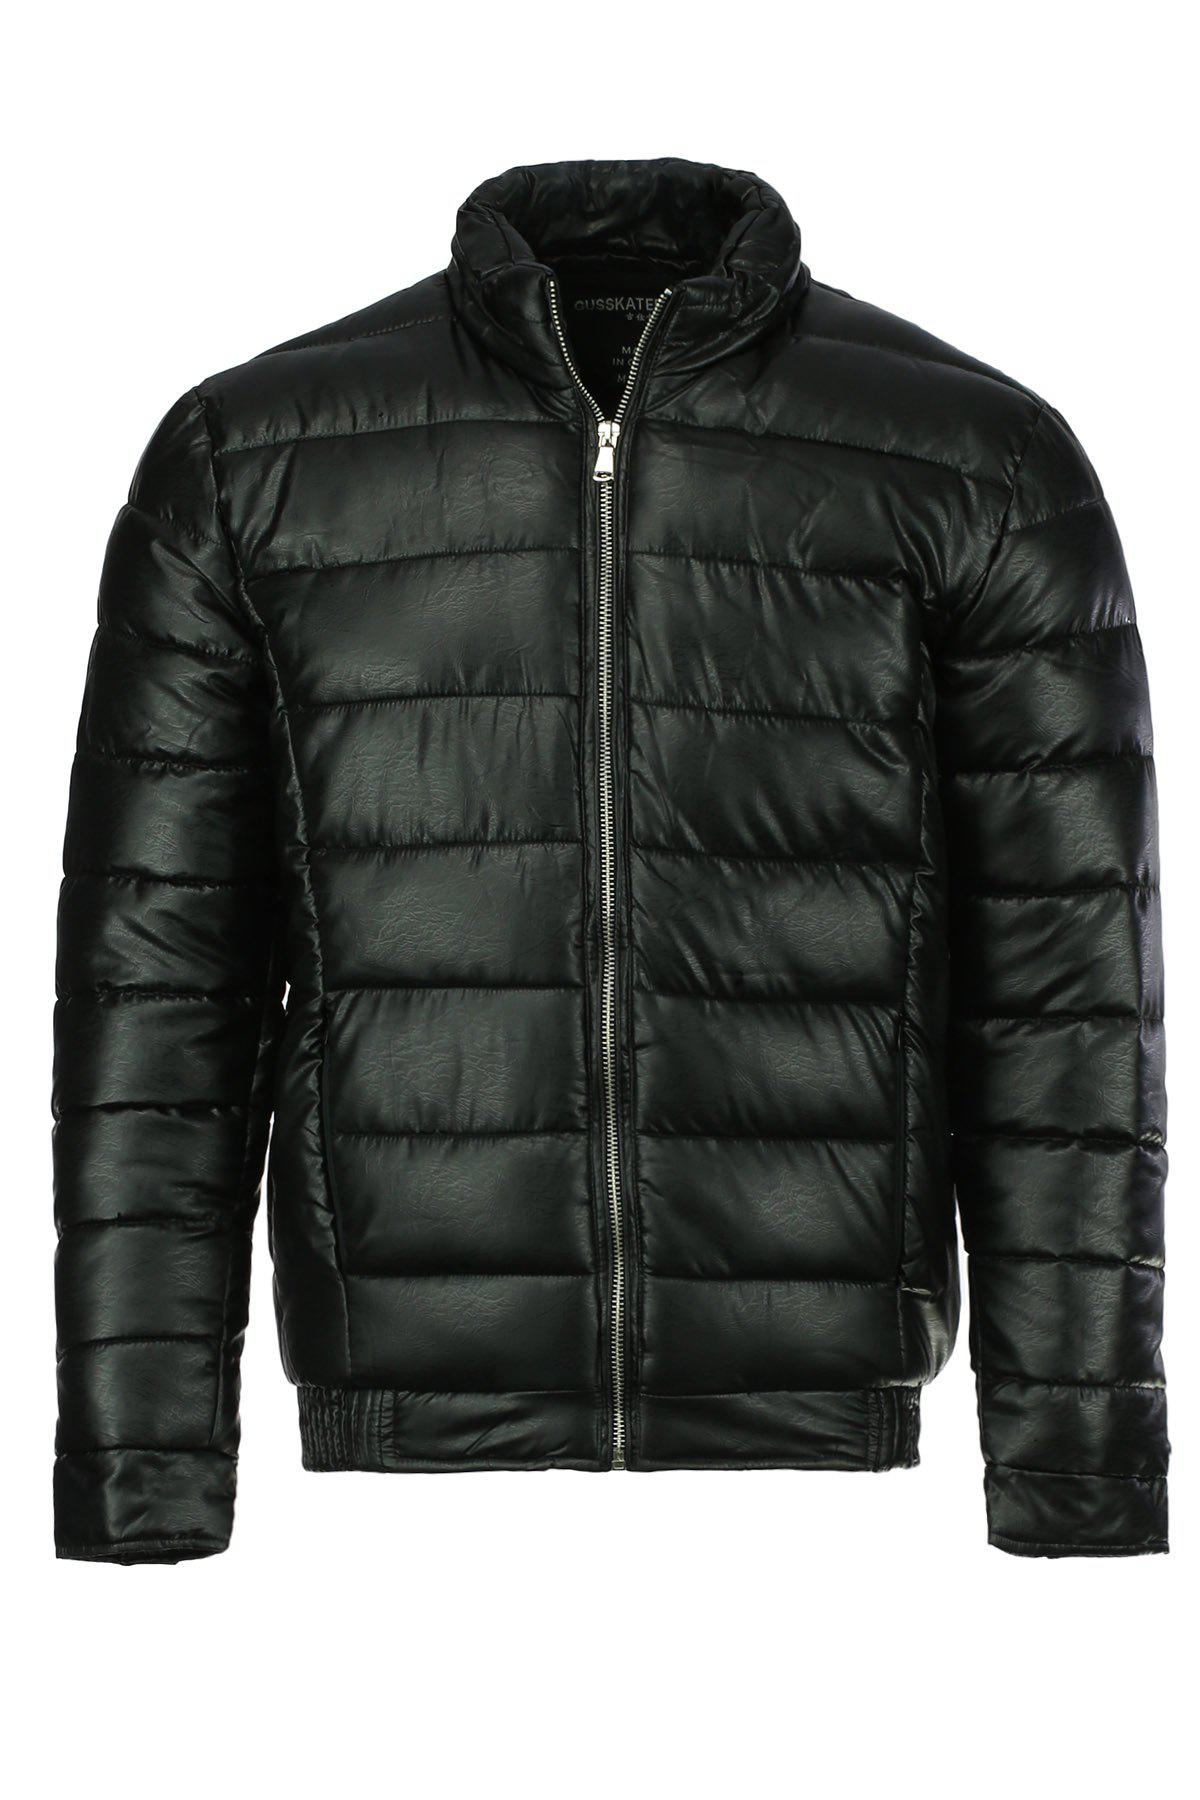 Solid Color Simple Stand Collar Long Sleeve Men's Cotton-Padded Jacket - BLACK XL